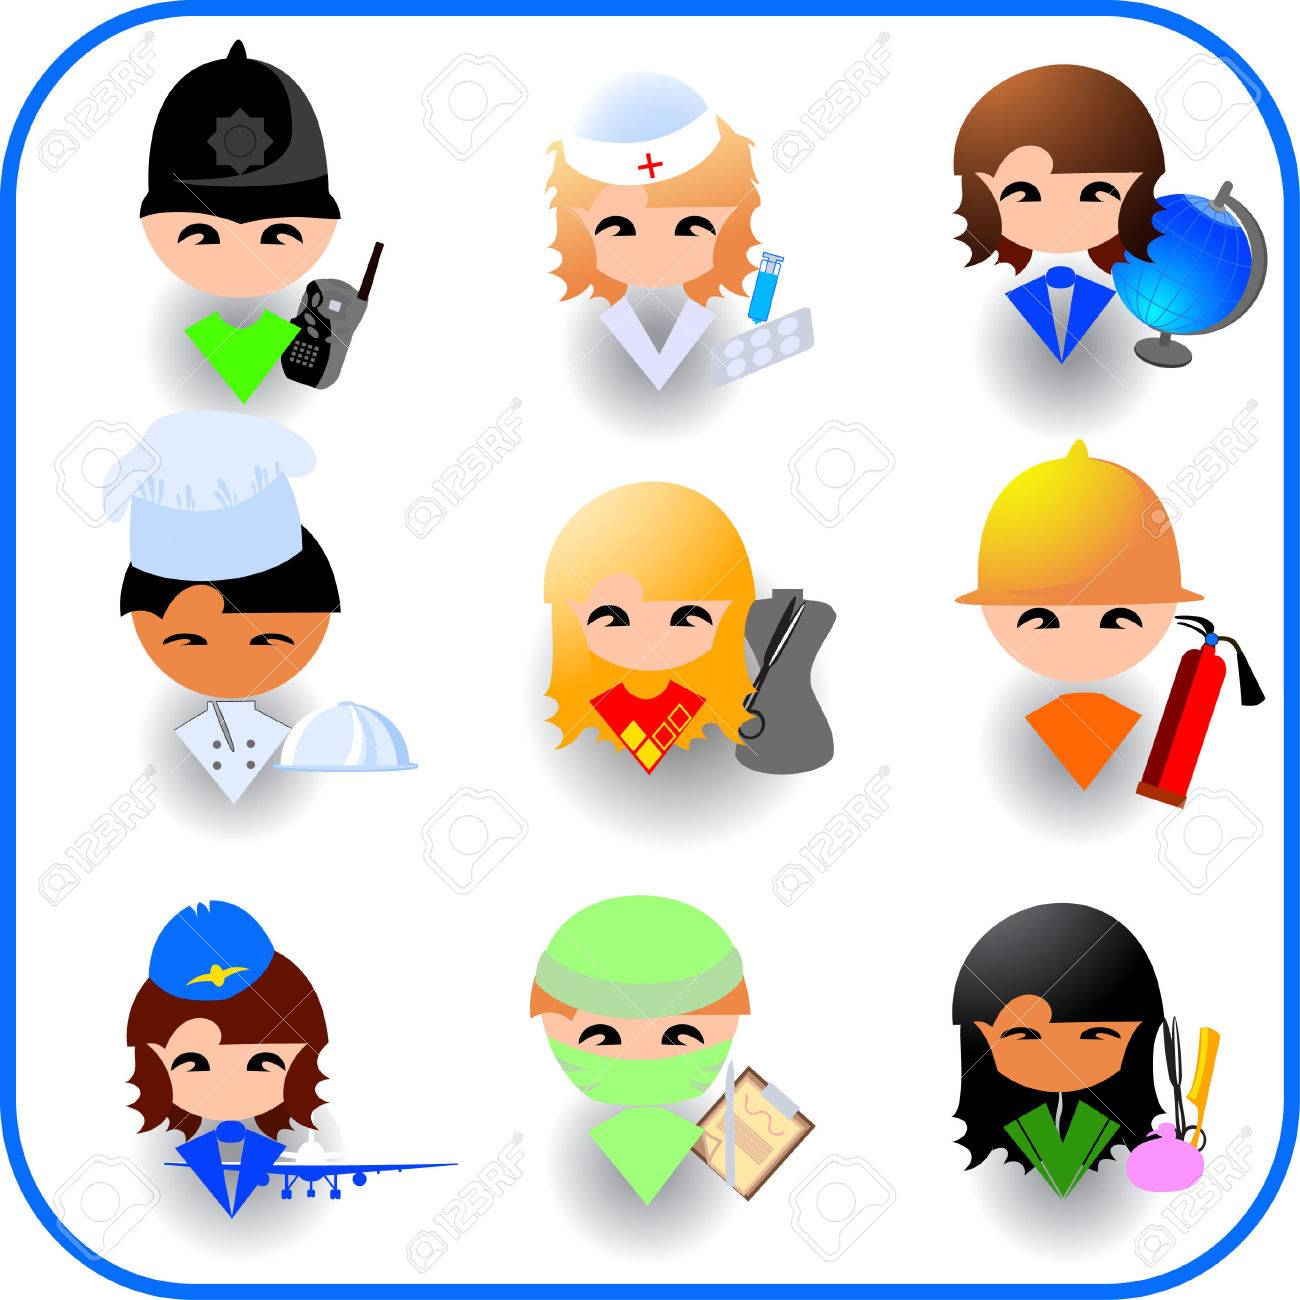 People's occupations. Icon set Stock Vector - 3726925